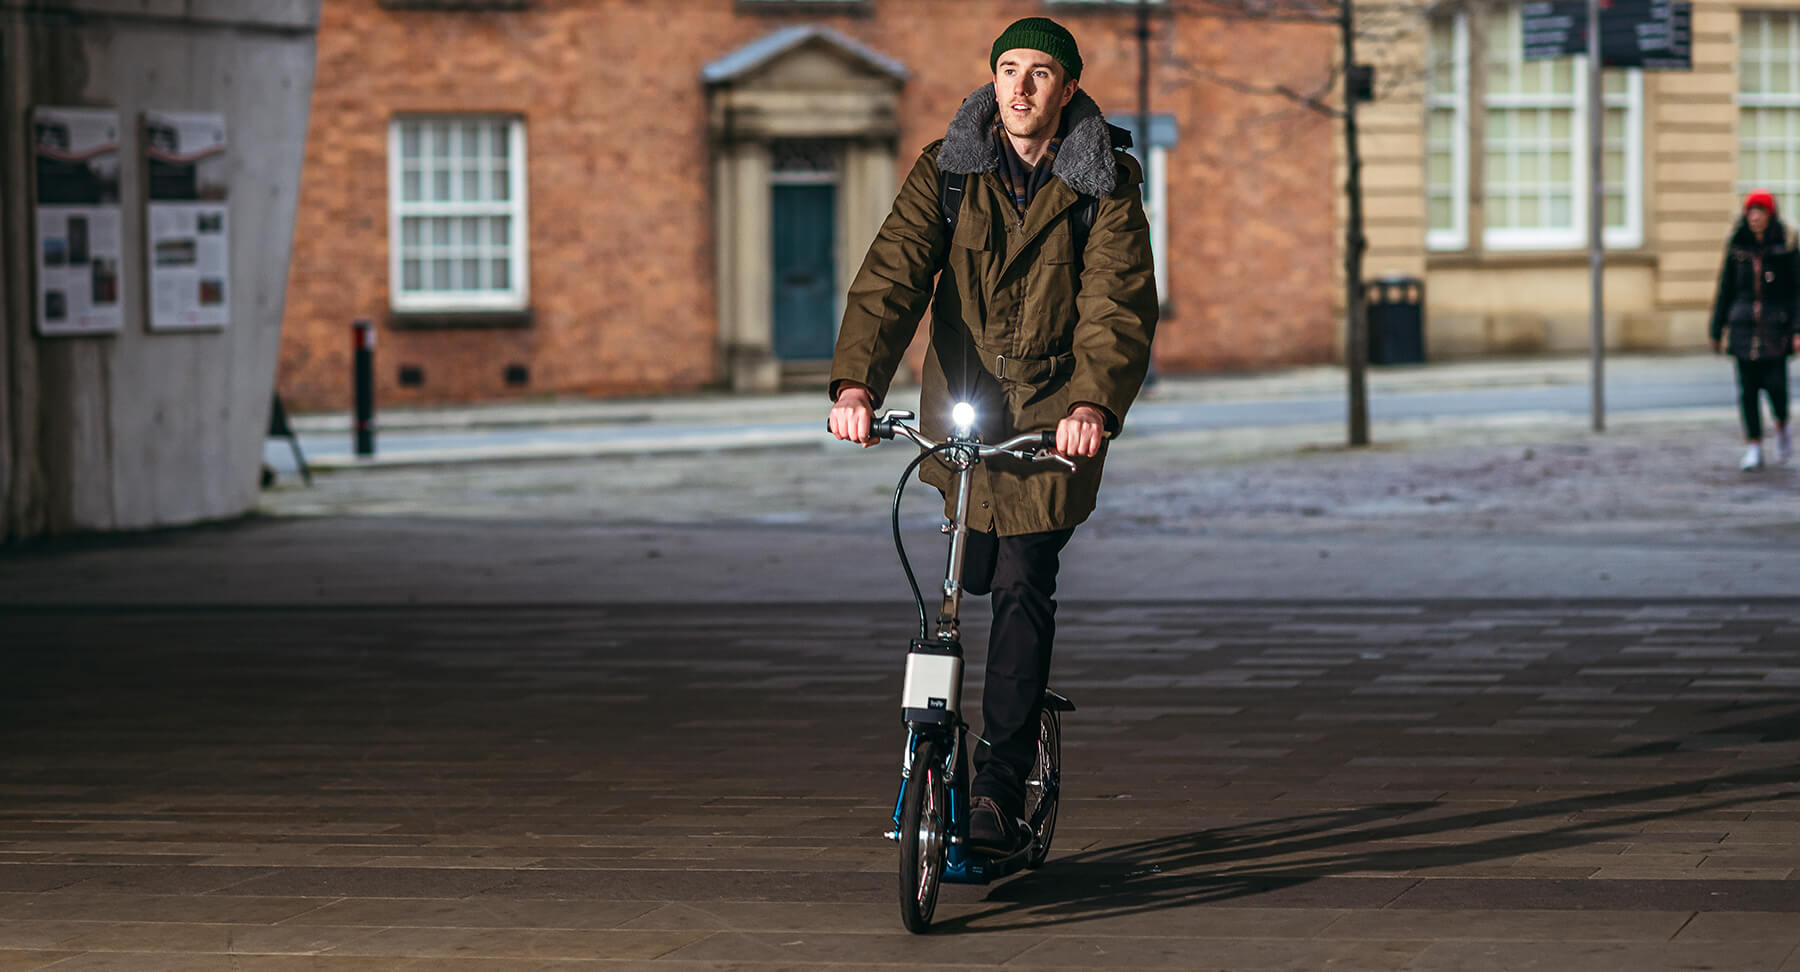 electric scooter for big and tall, law on electric scooters, electric scooters law uk